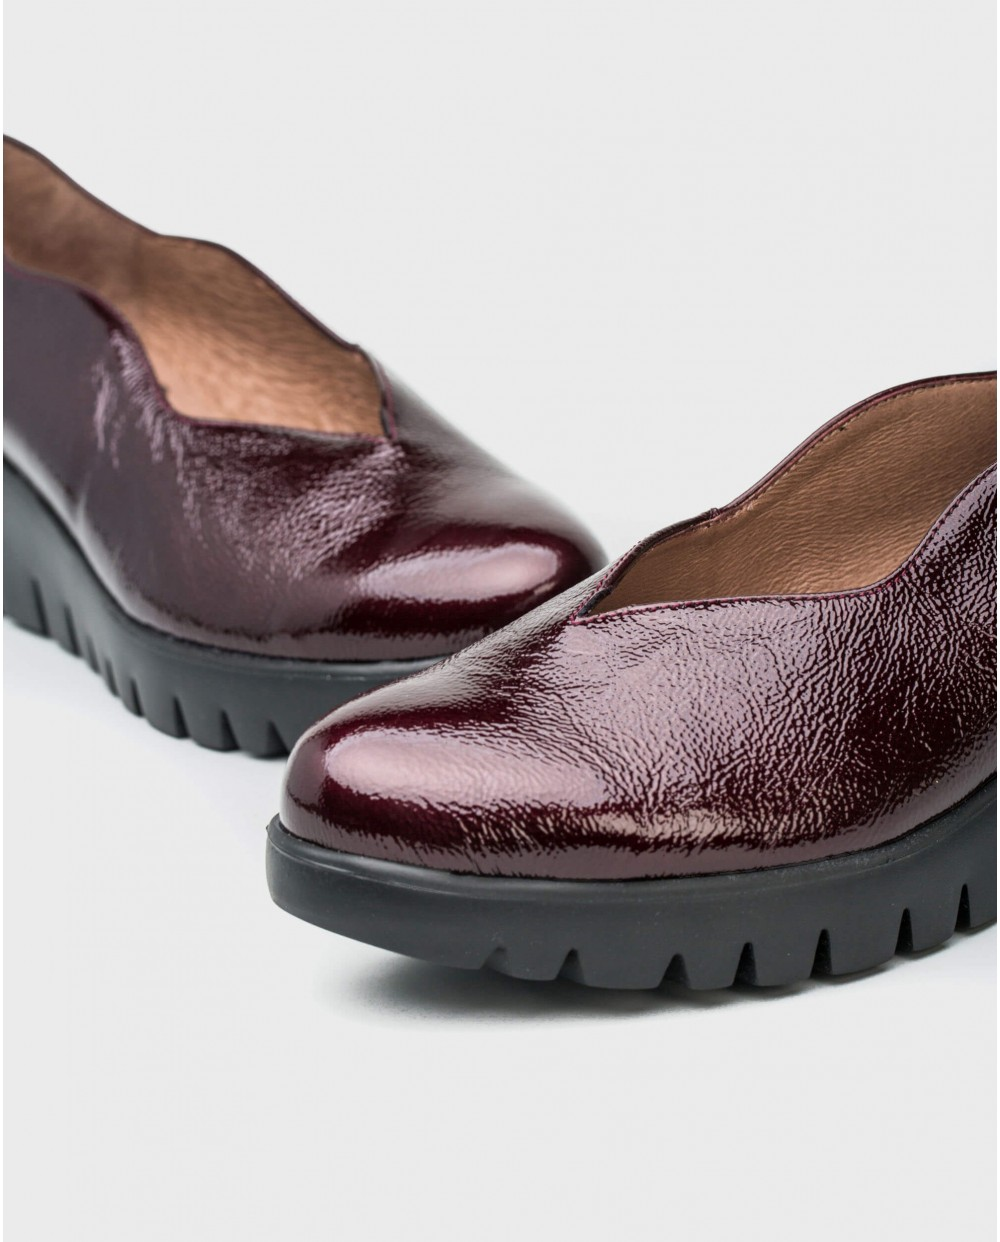 Wonders-Wedges-Patent leather moccasins